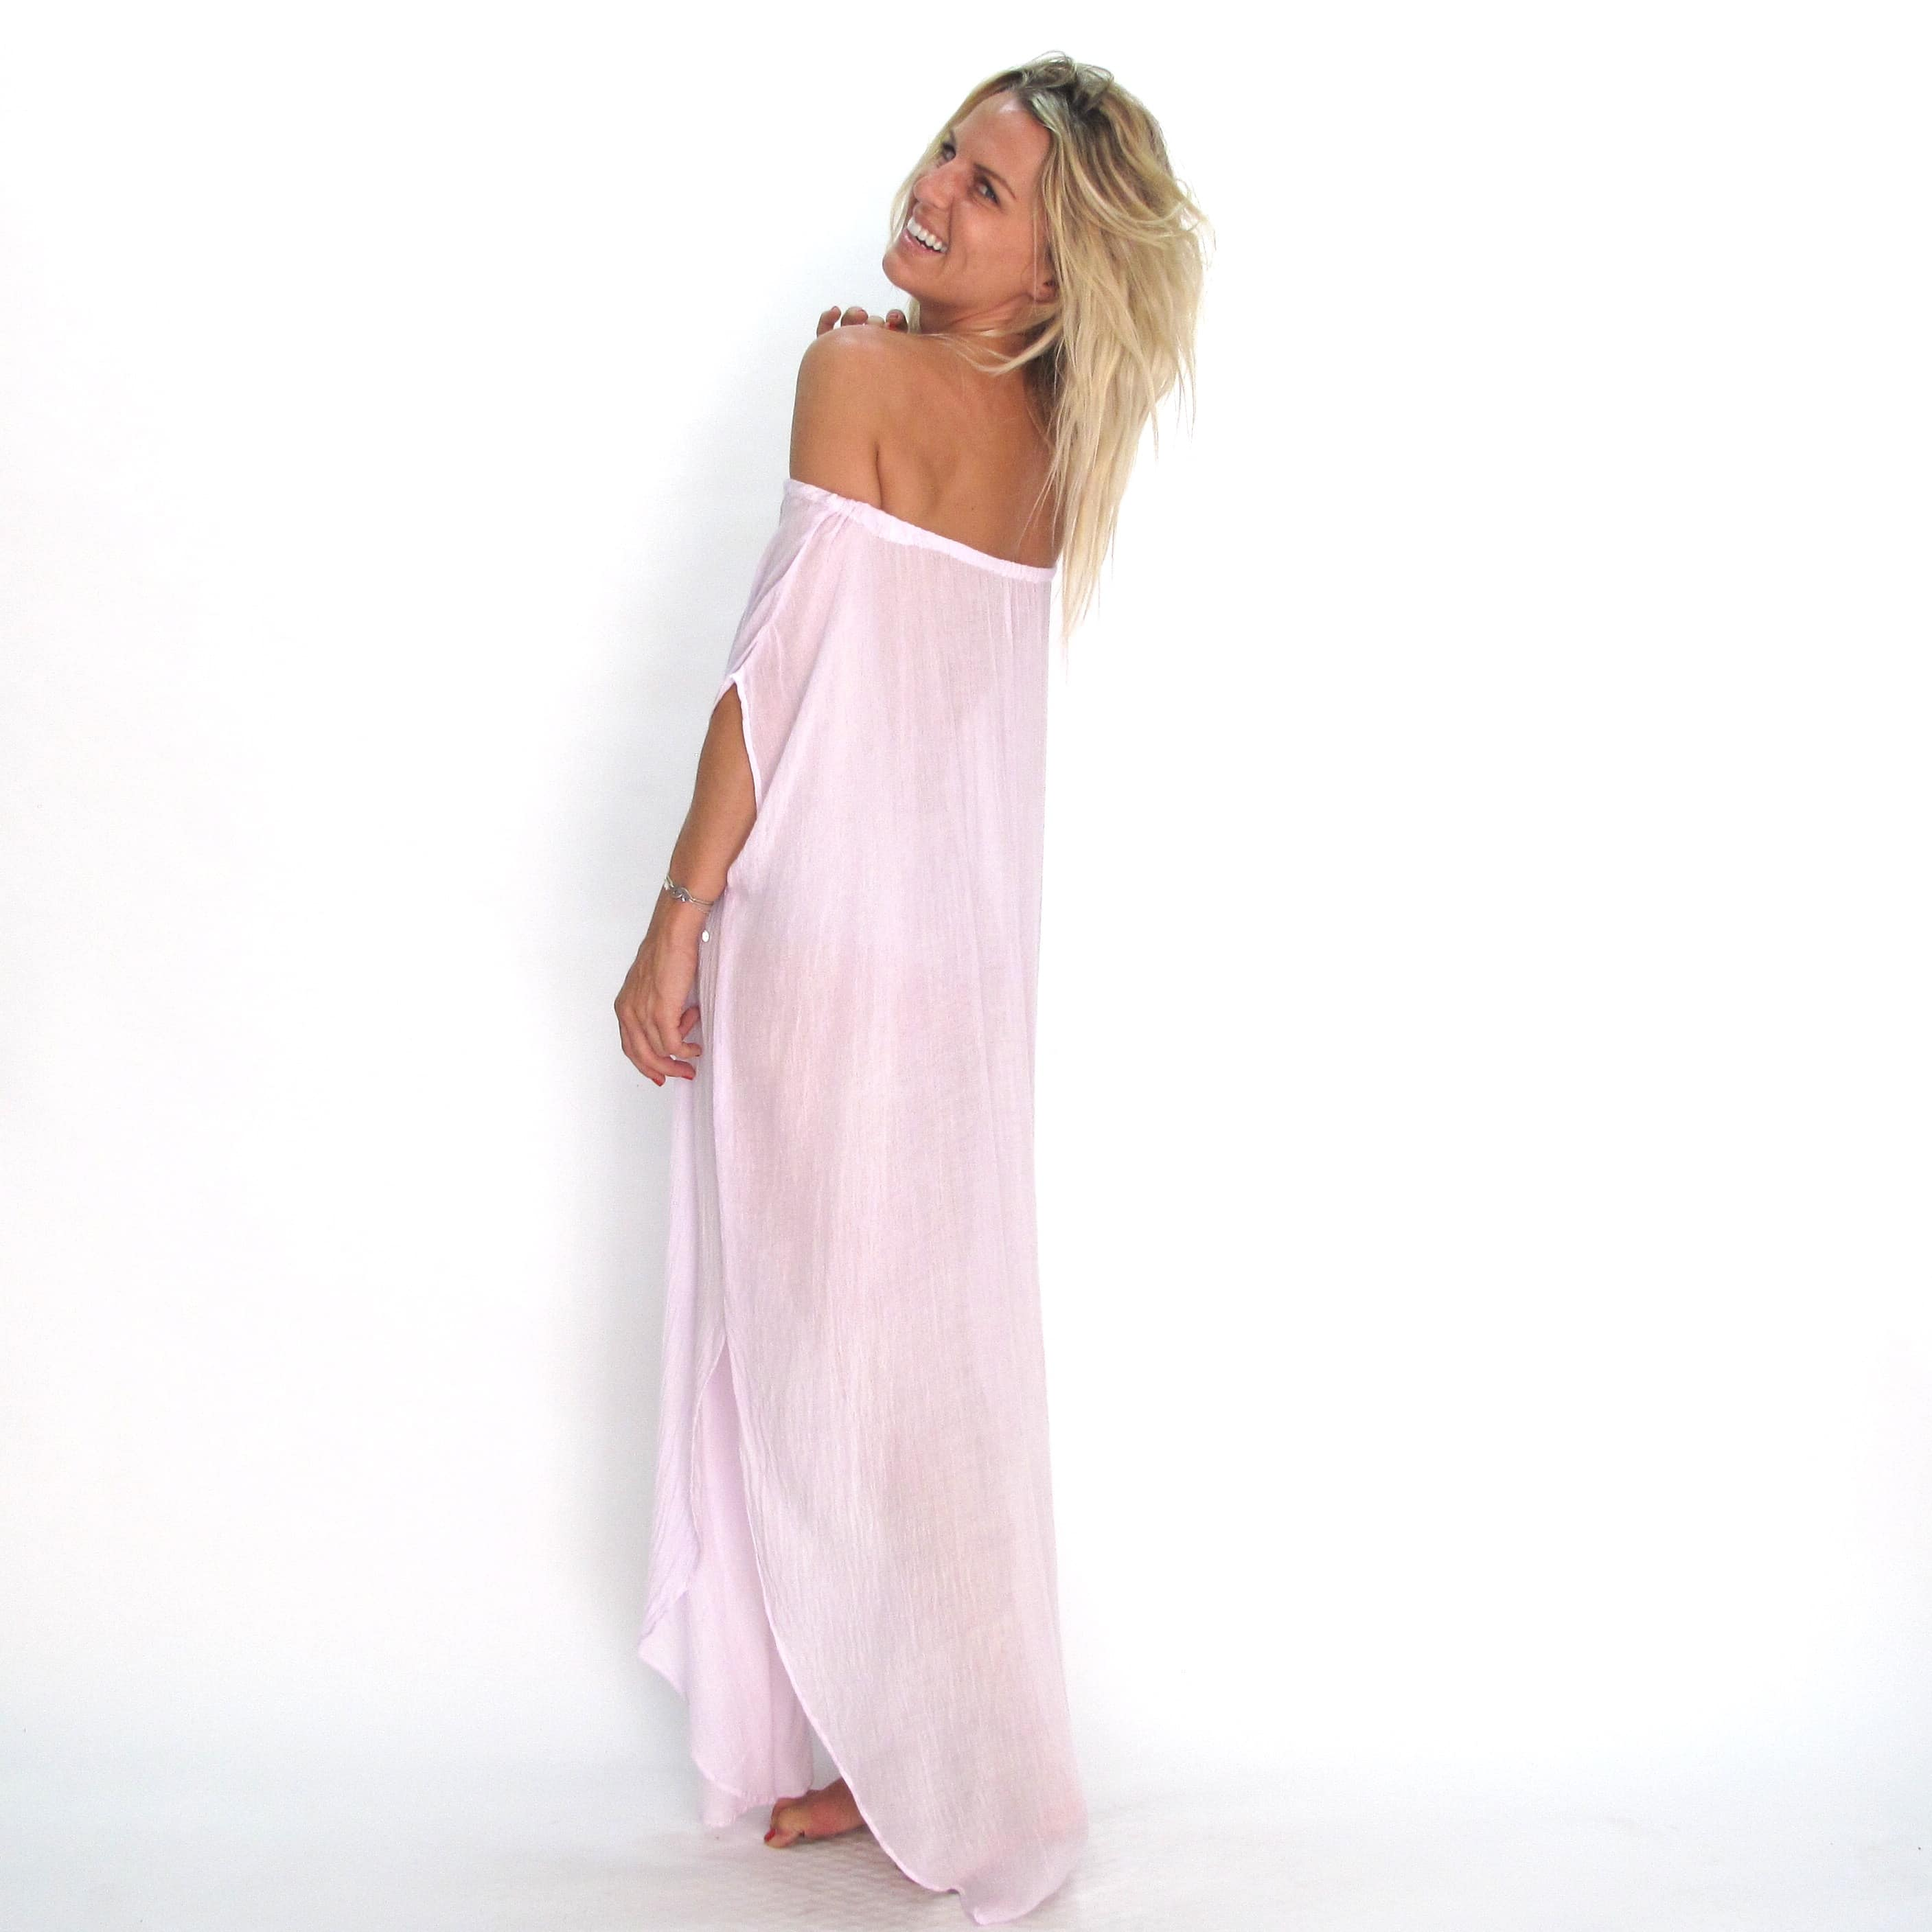 Dress Gili Island les neobourgeoises resortwear dress boheme robe boheme tunique boheme fashion brand beachwear vetement boheme clothe beachwear clothe resortwear boutique accessoirs boheme